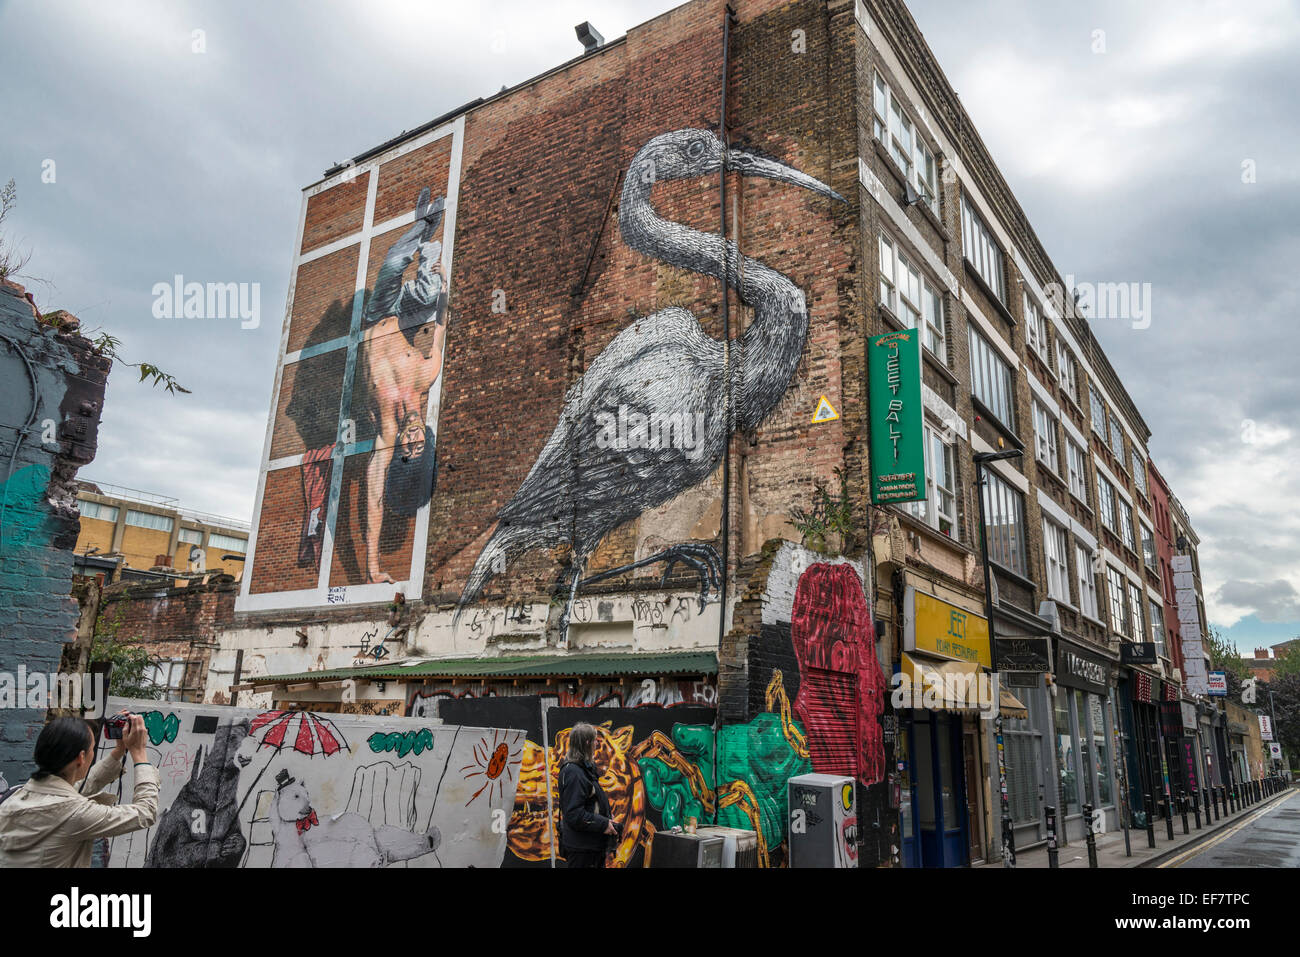 London urban street graffiti in the Brick Lane area of the city - EDITORIAL USE ONLY Stock Photo